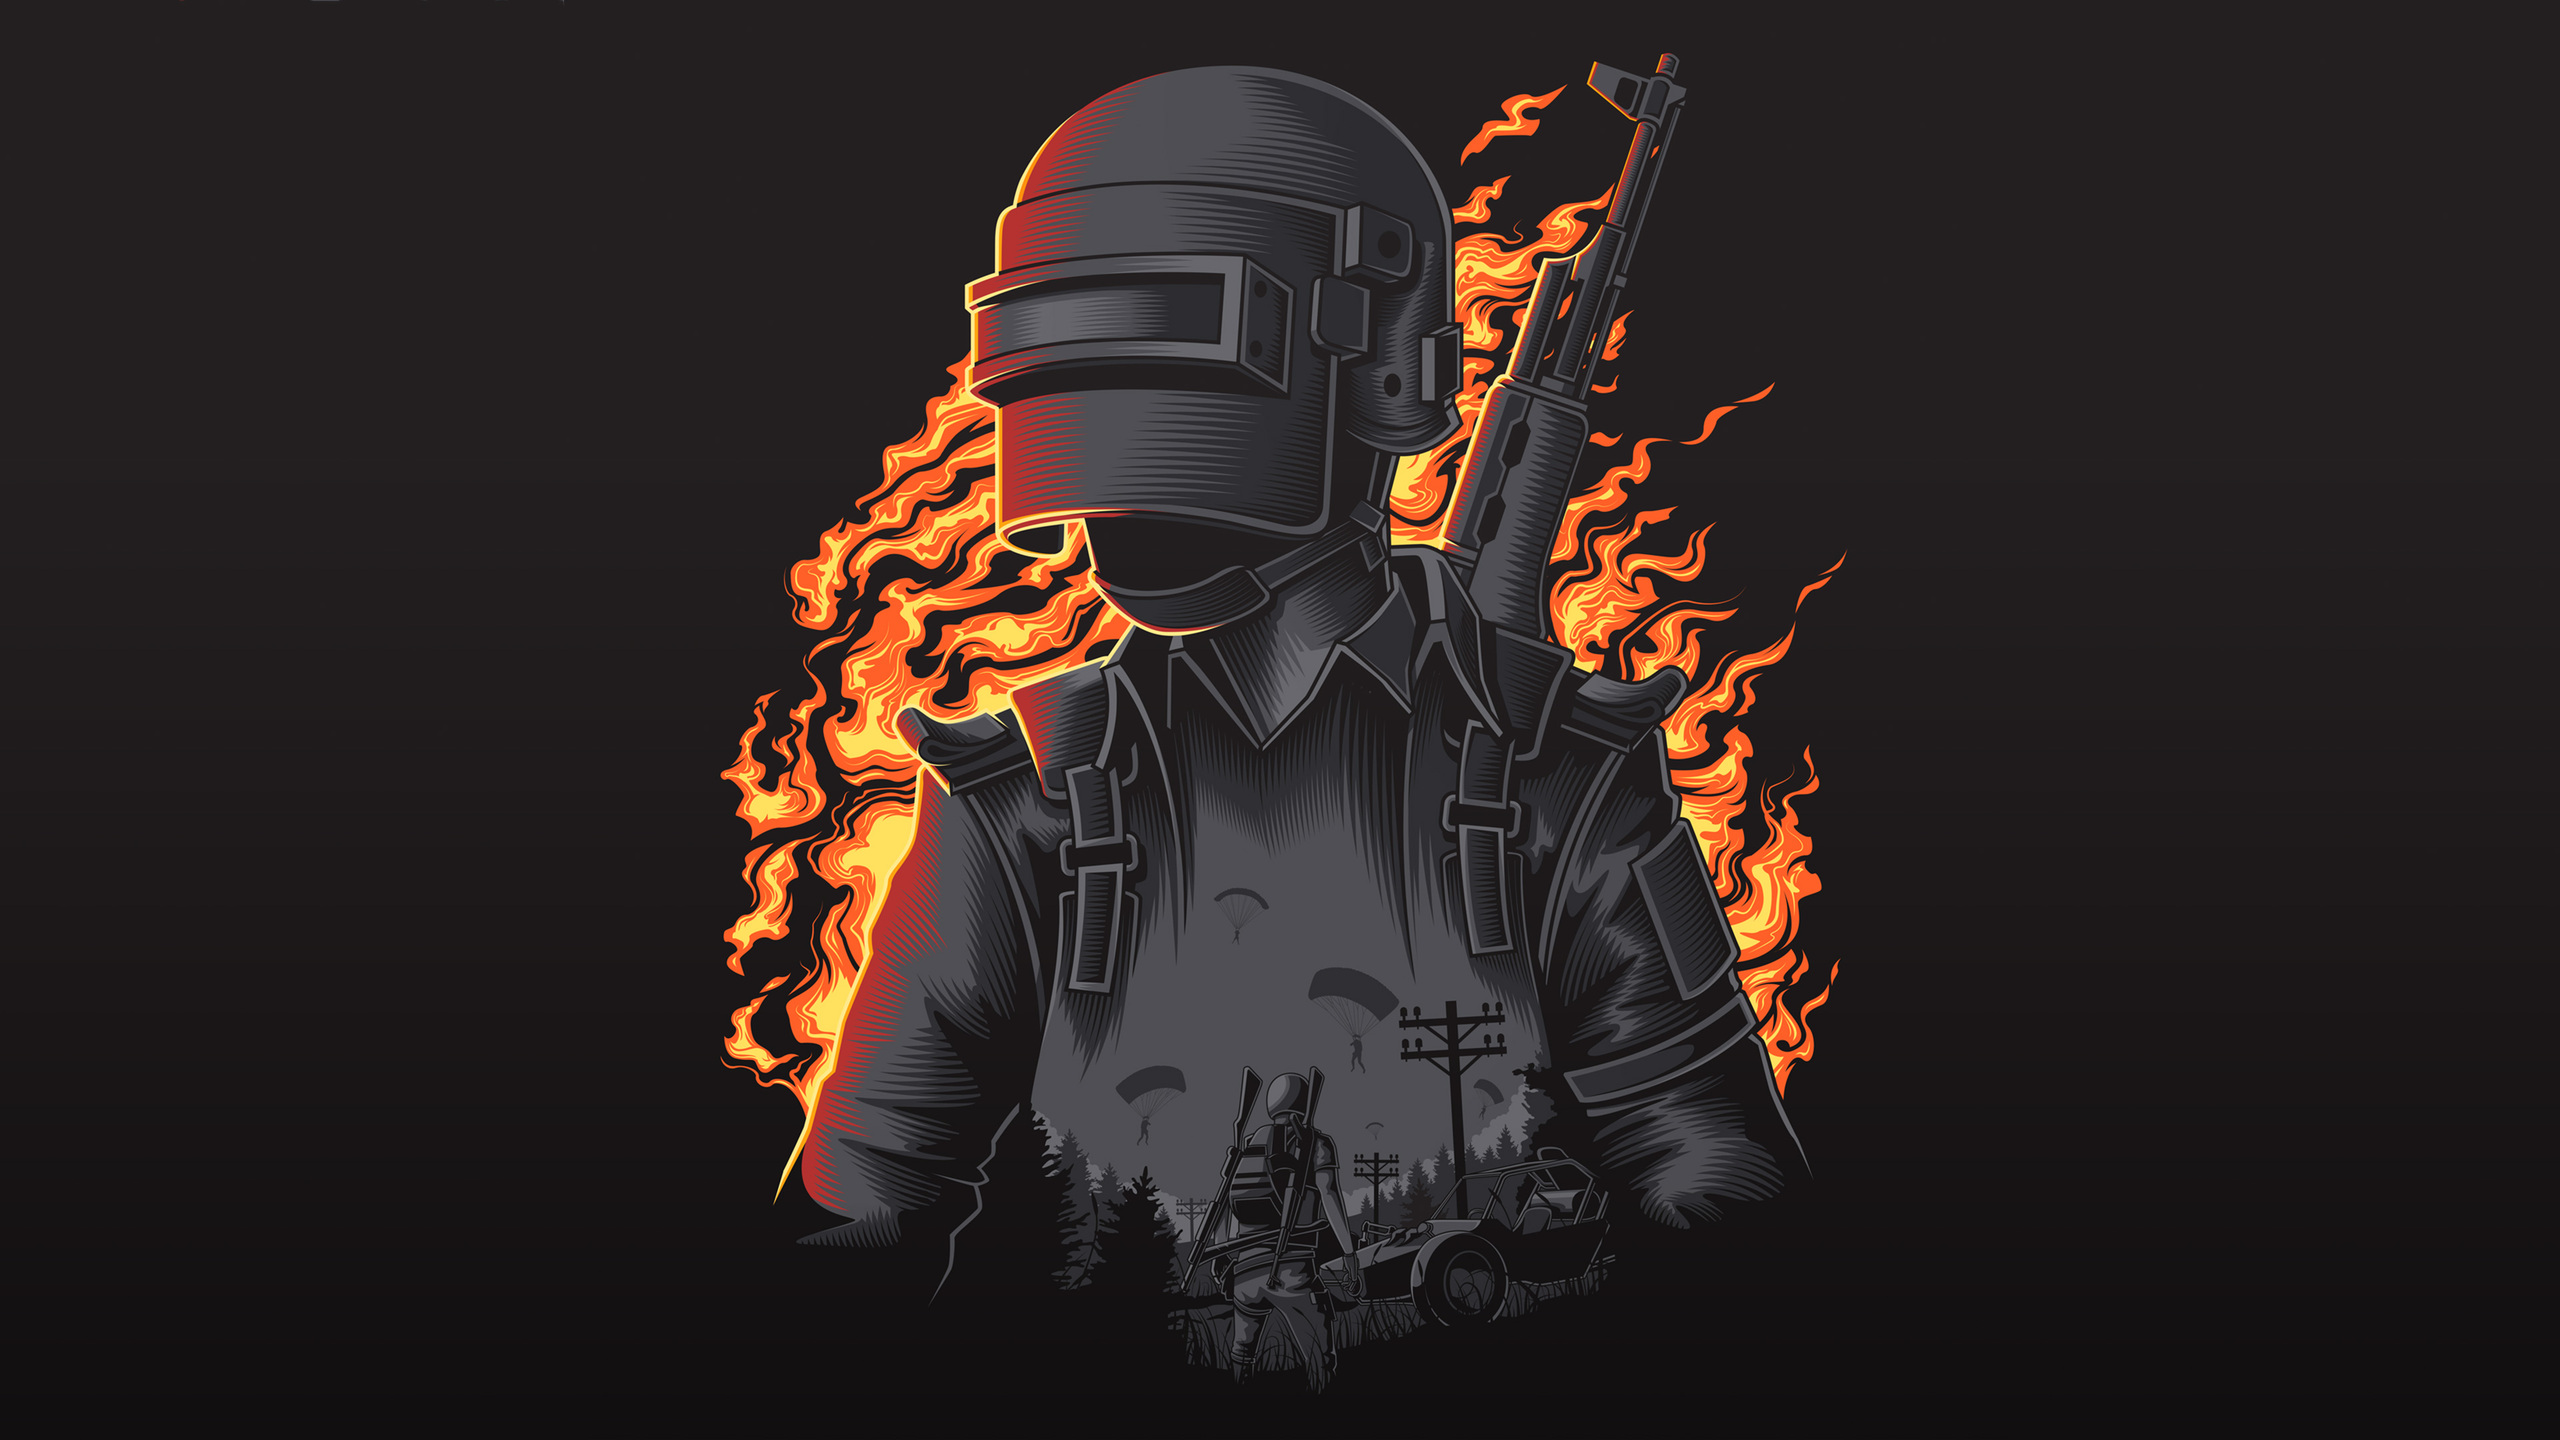 Pubg Wallpaper Black: 2560x1440 Pubg Illustration 4k 1440P Resolution HD 4k